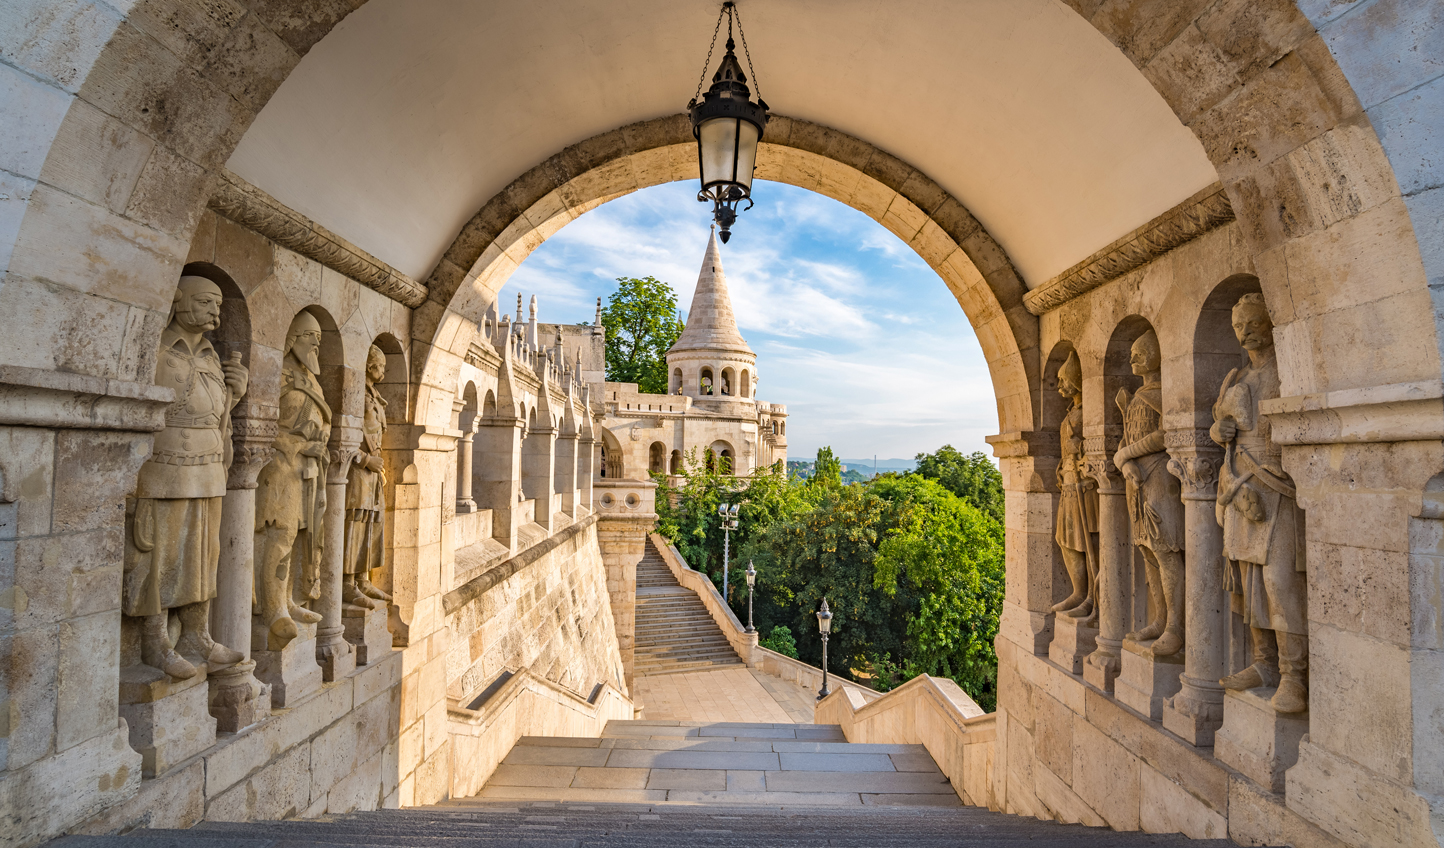 Look out over the views from the Fishermen's Bastion